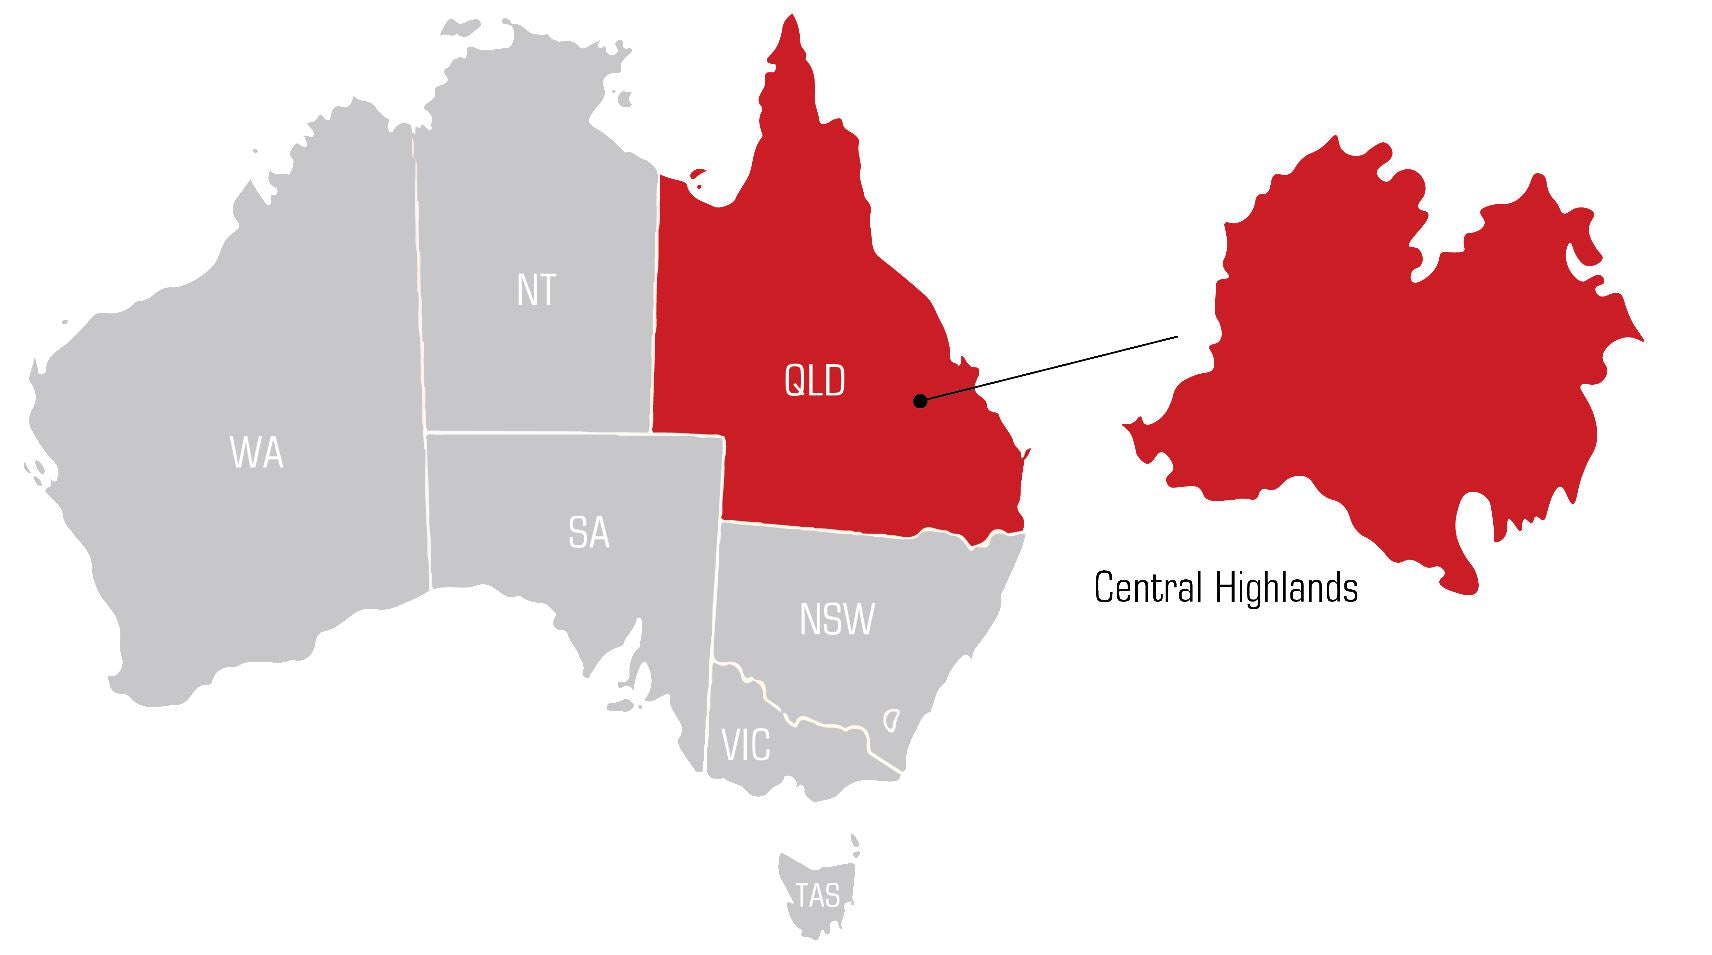 QWS central highlands Welding Supplies map